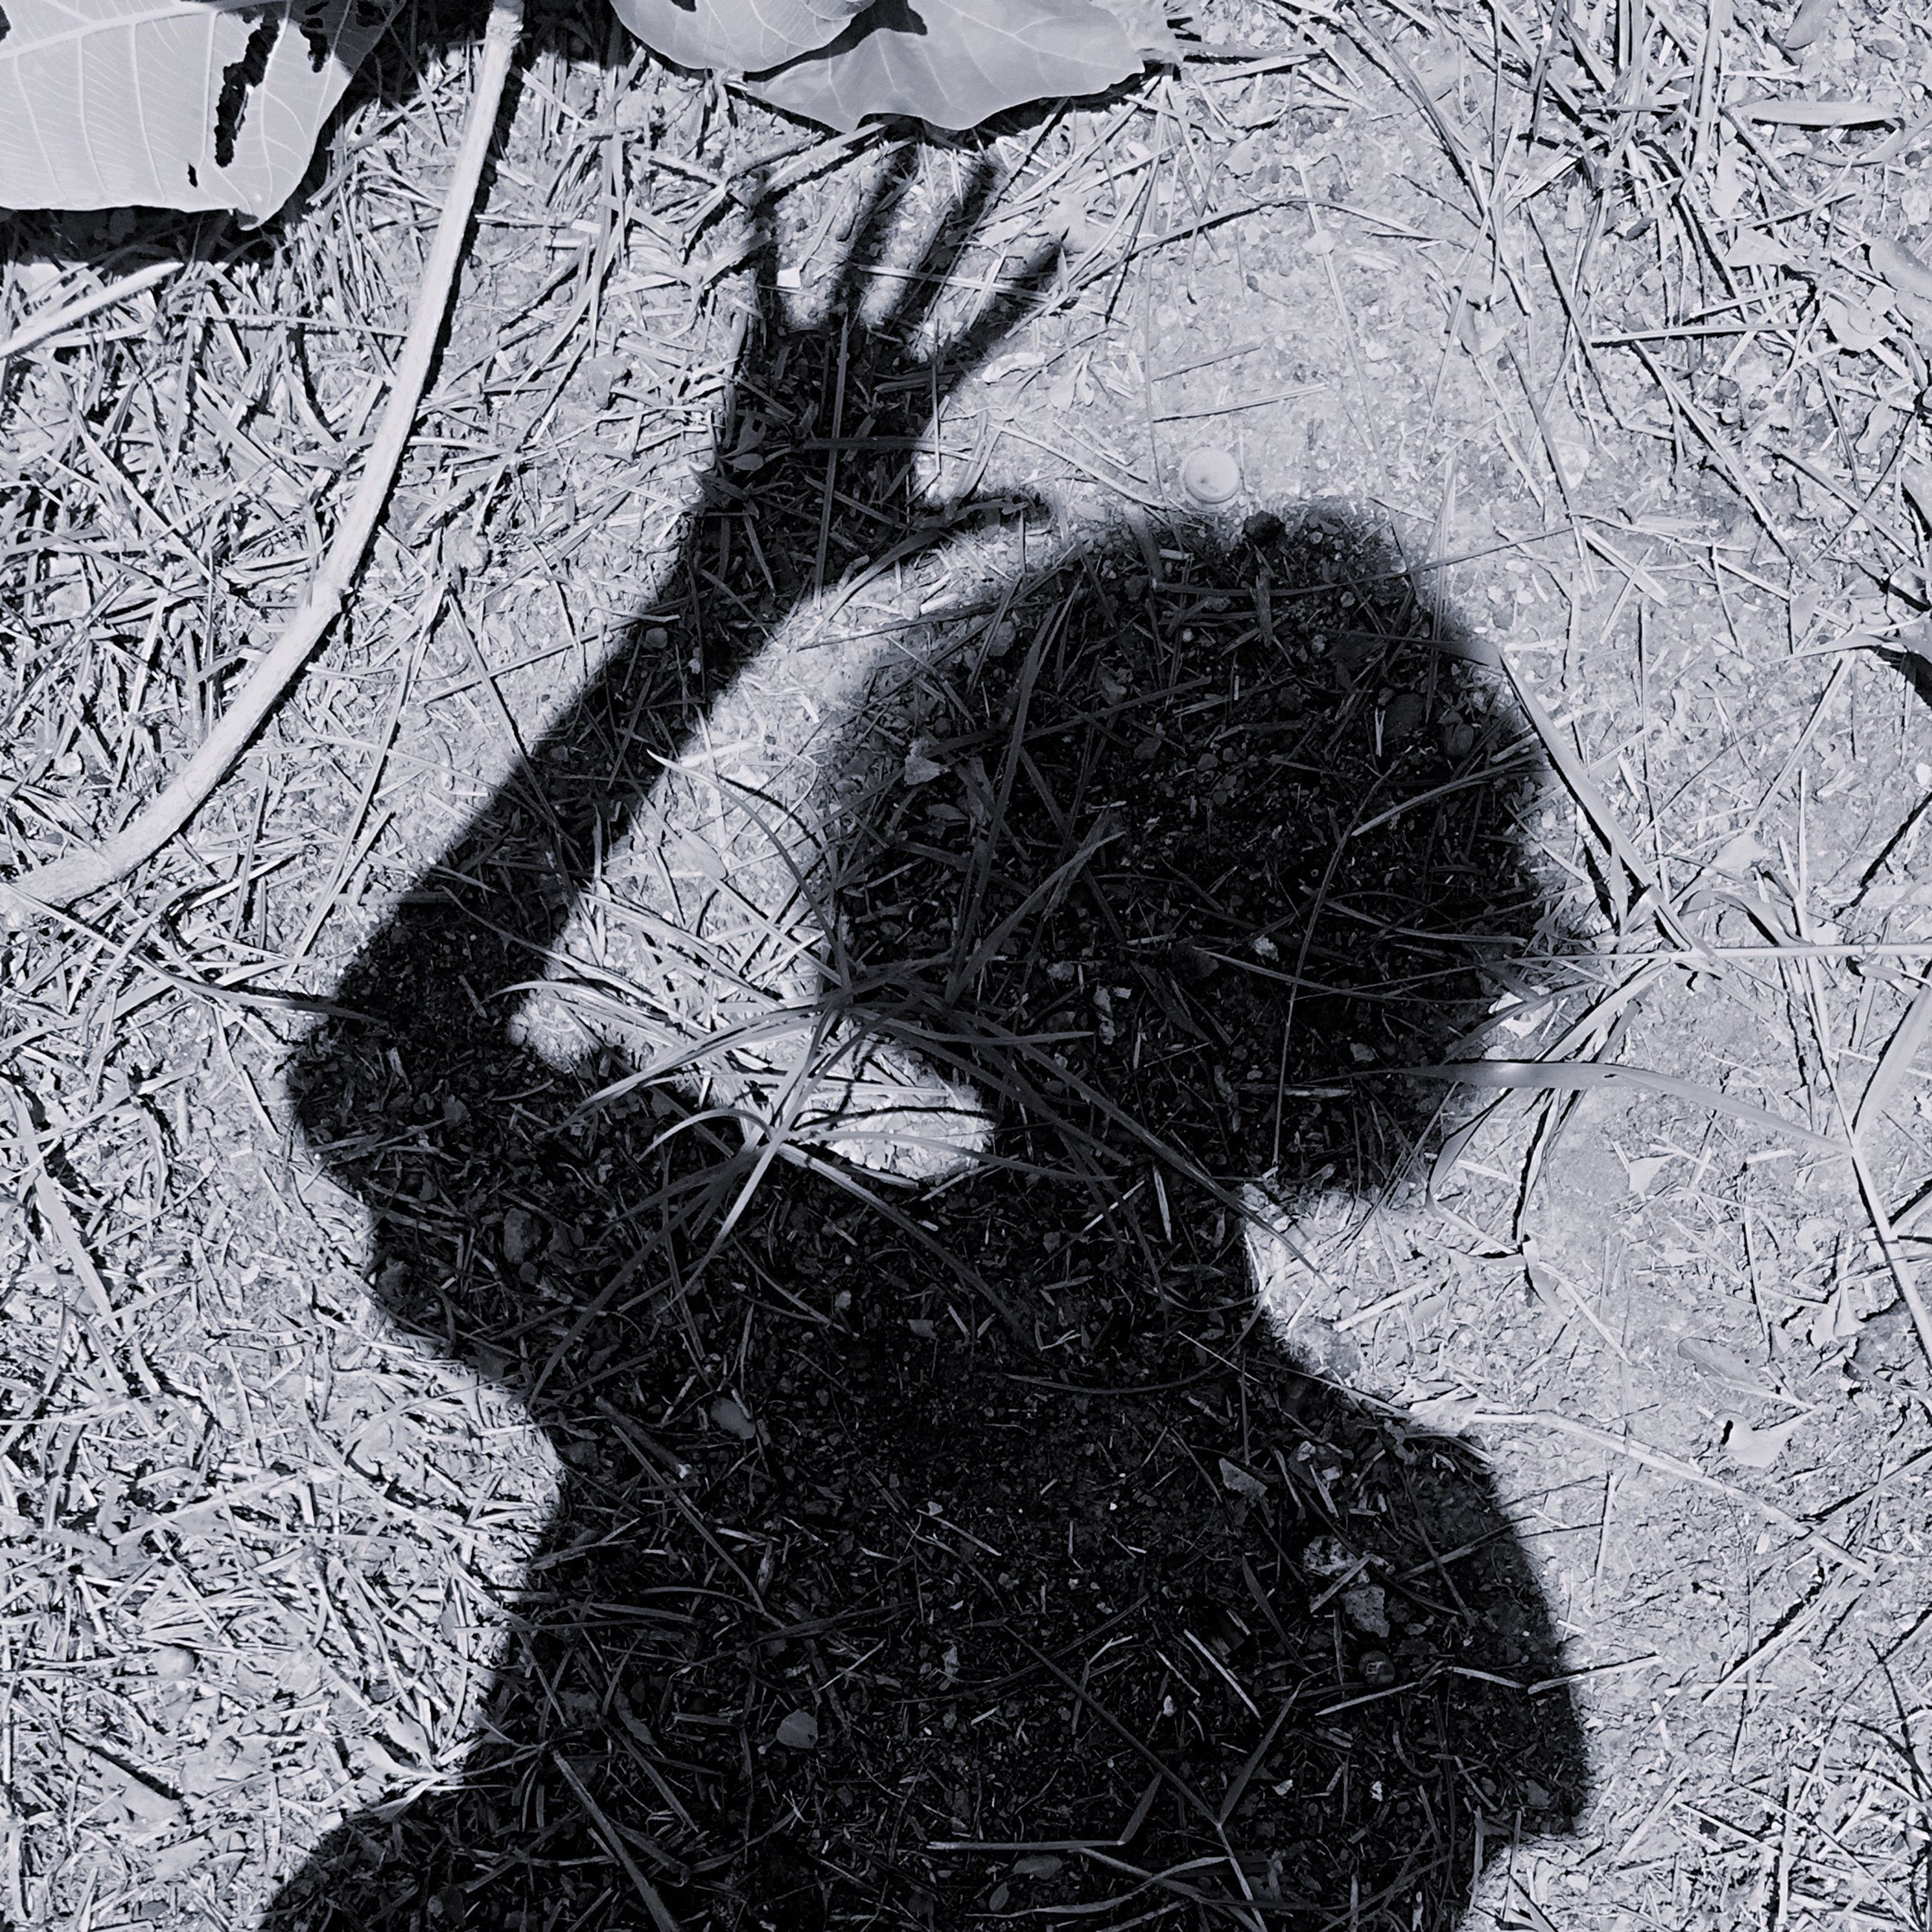 shadow, day, one person, outdoors, nature, sunlight, real people, women, lifestyles, tree, close-up, people